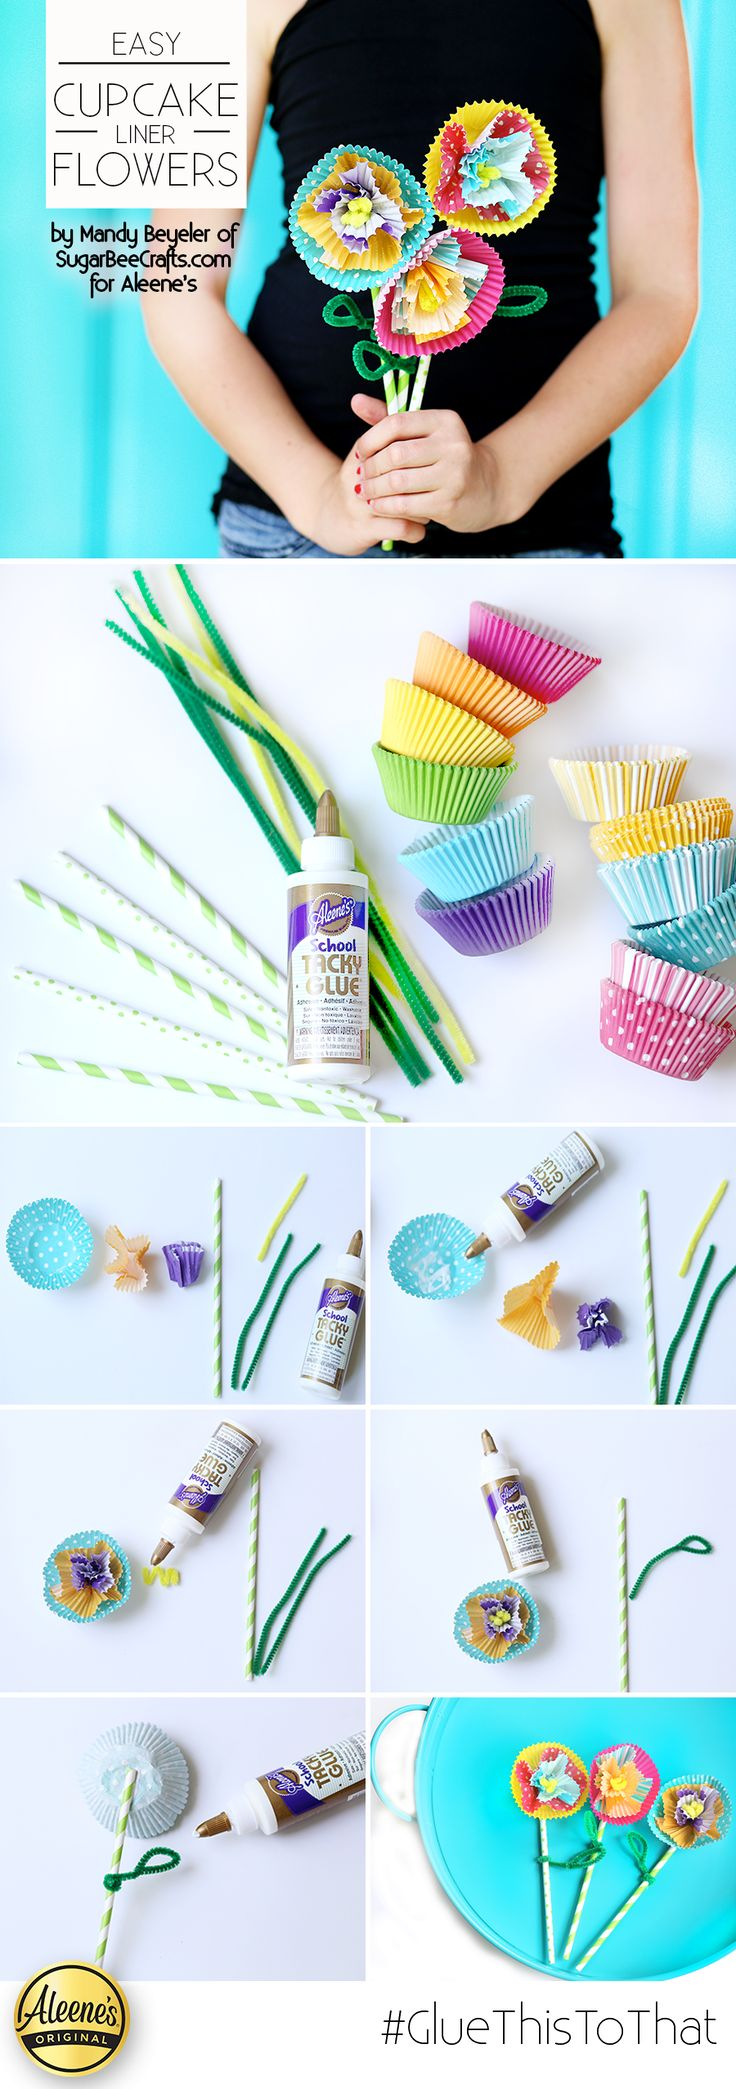 Make these awesome cupcake liner flowers using just a few simple supplies crafts and Aleene's School Tacky Glue! Get the how-to DIY from Mandy Beyeler of @sugarbeecrafts on our blog! A great project for Back to school or for a fun summer boredom buster!